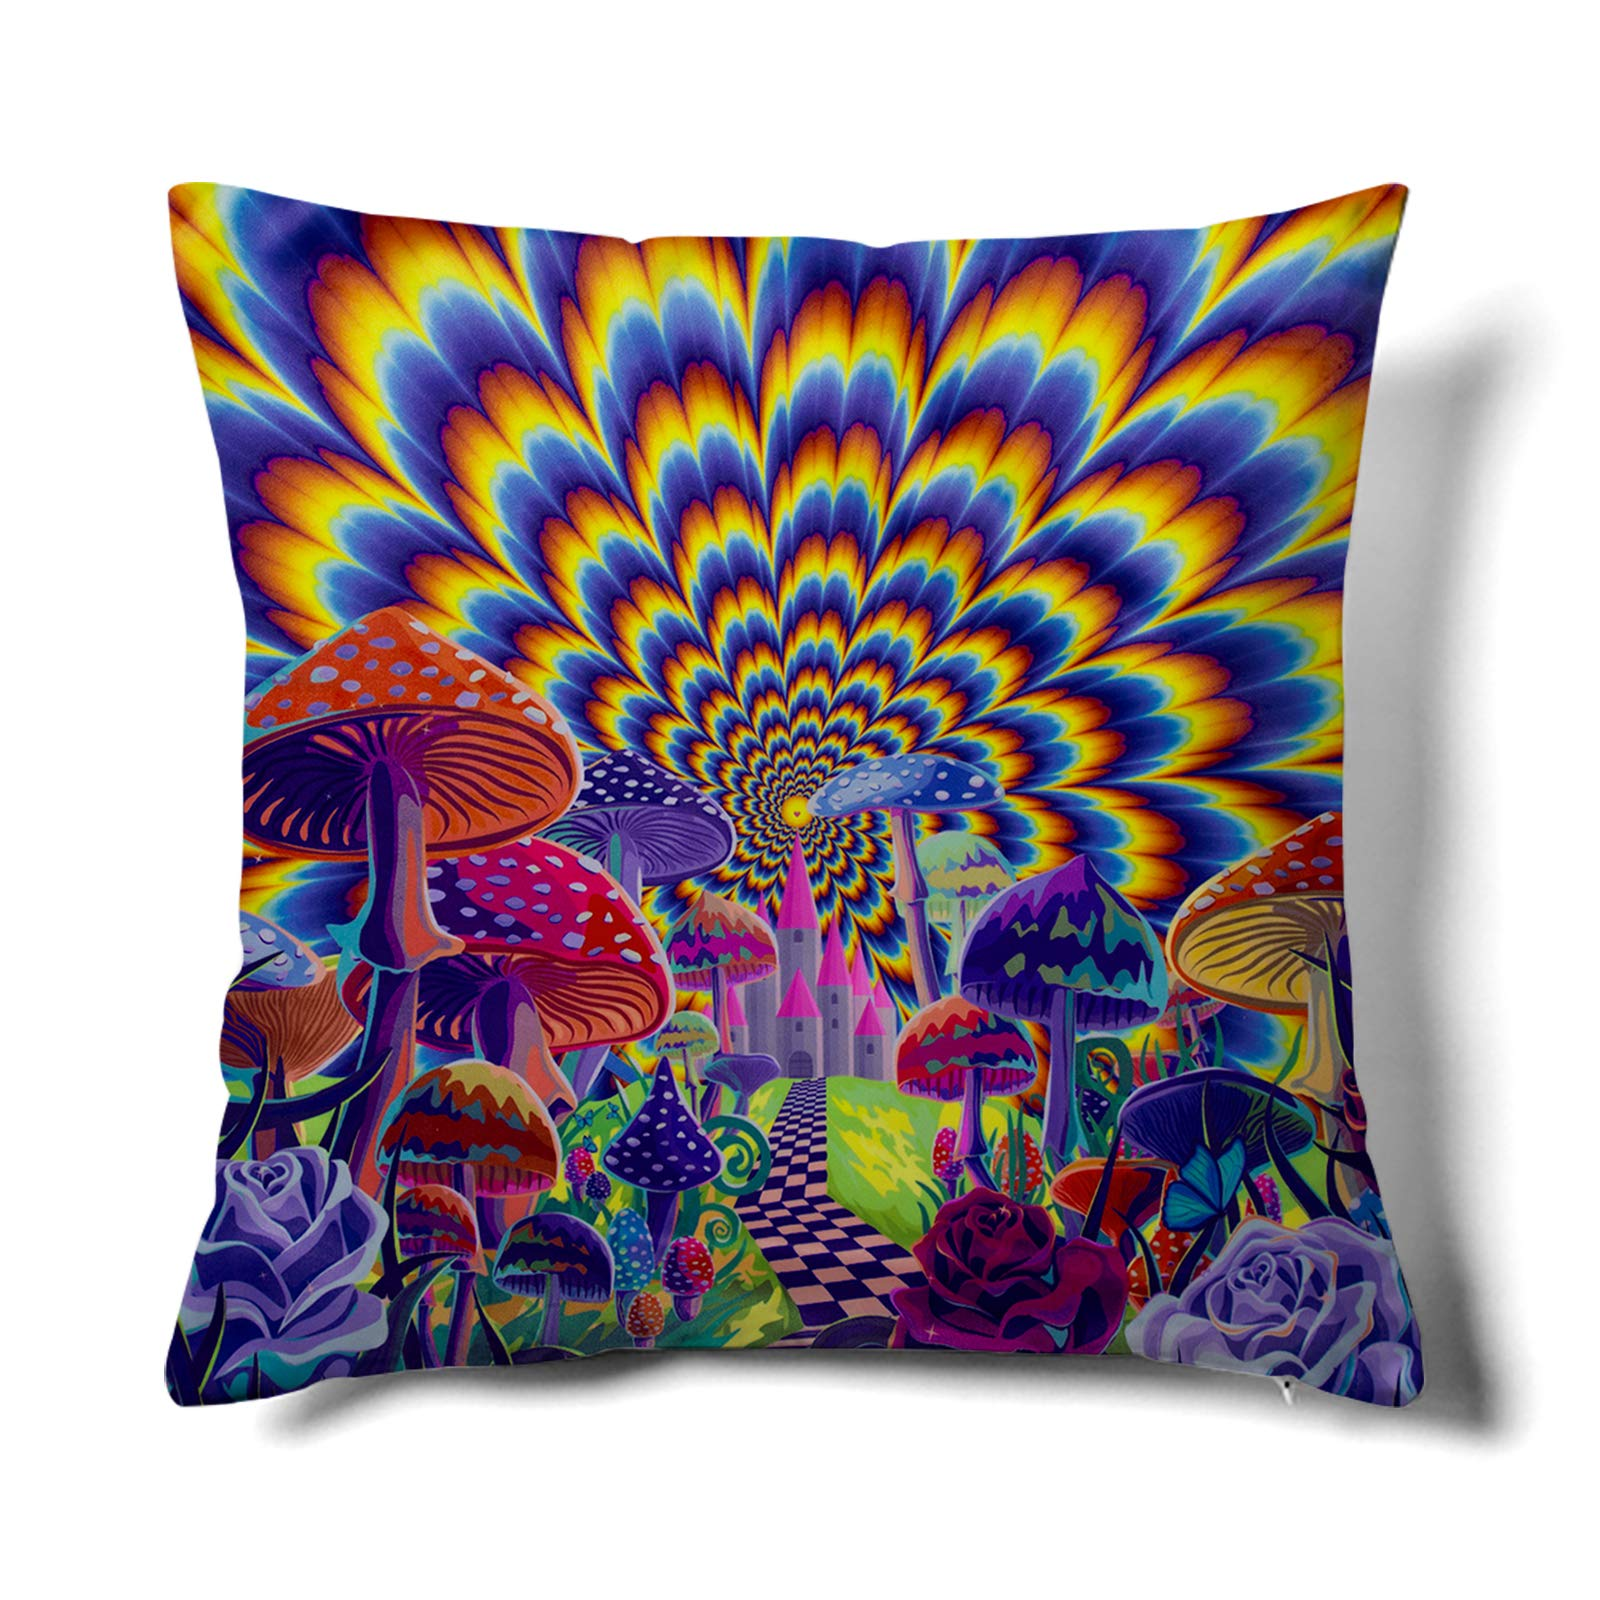 HMS Happy Memories Velvet Pillow Cases Square Decorative Throw Pillow Cover 45x45cm(18x18 Inch) for Couch Sofa Bed Living Room Bedroom (Multicolor Hippie)